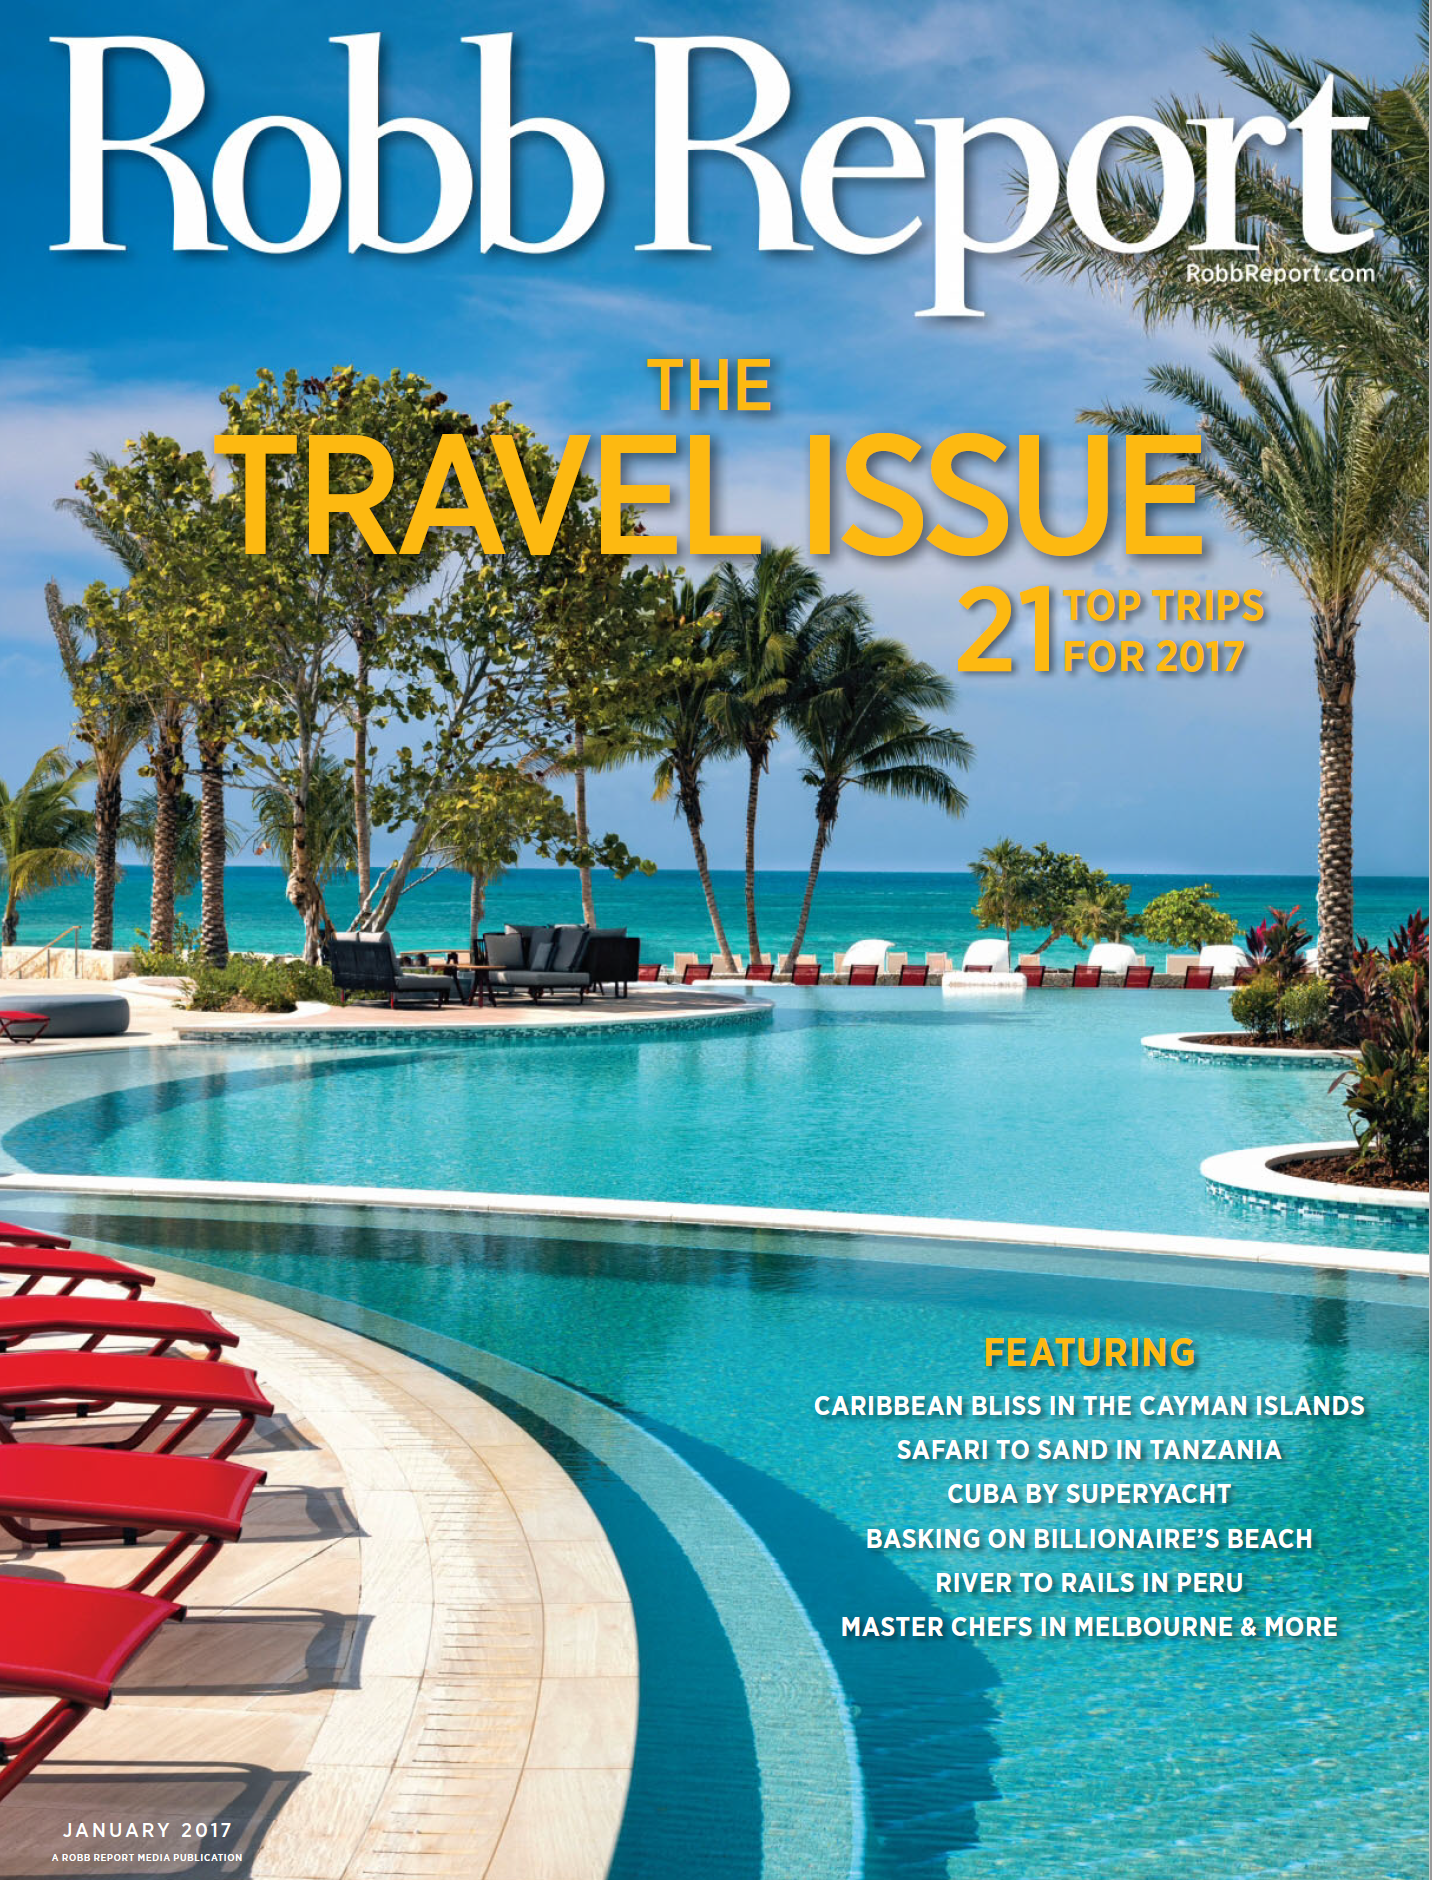 Robb Report | Travel Issue Malibu Hotel Nobu Ryokan